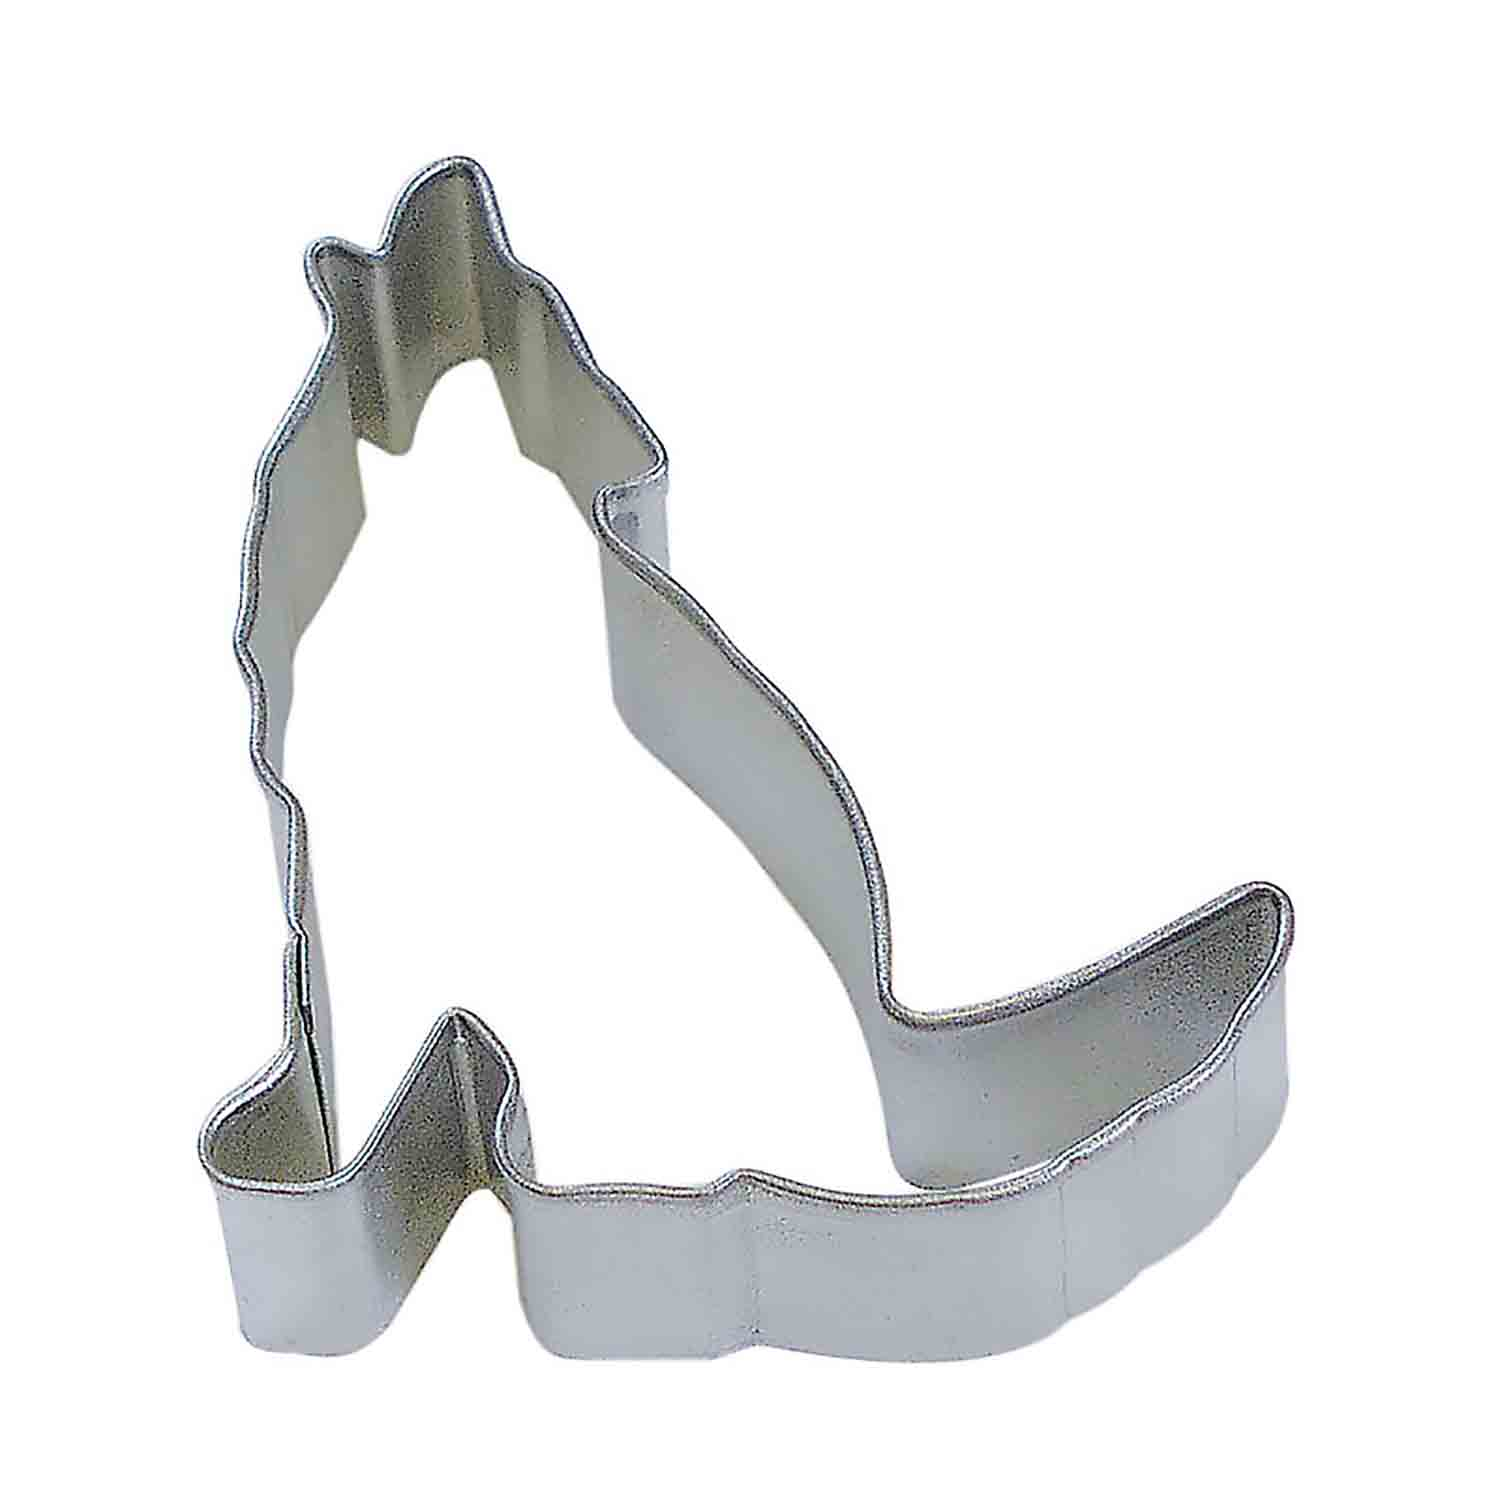 Coyote Cookie Cutter